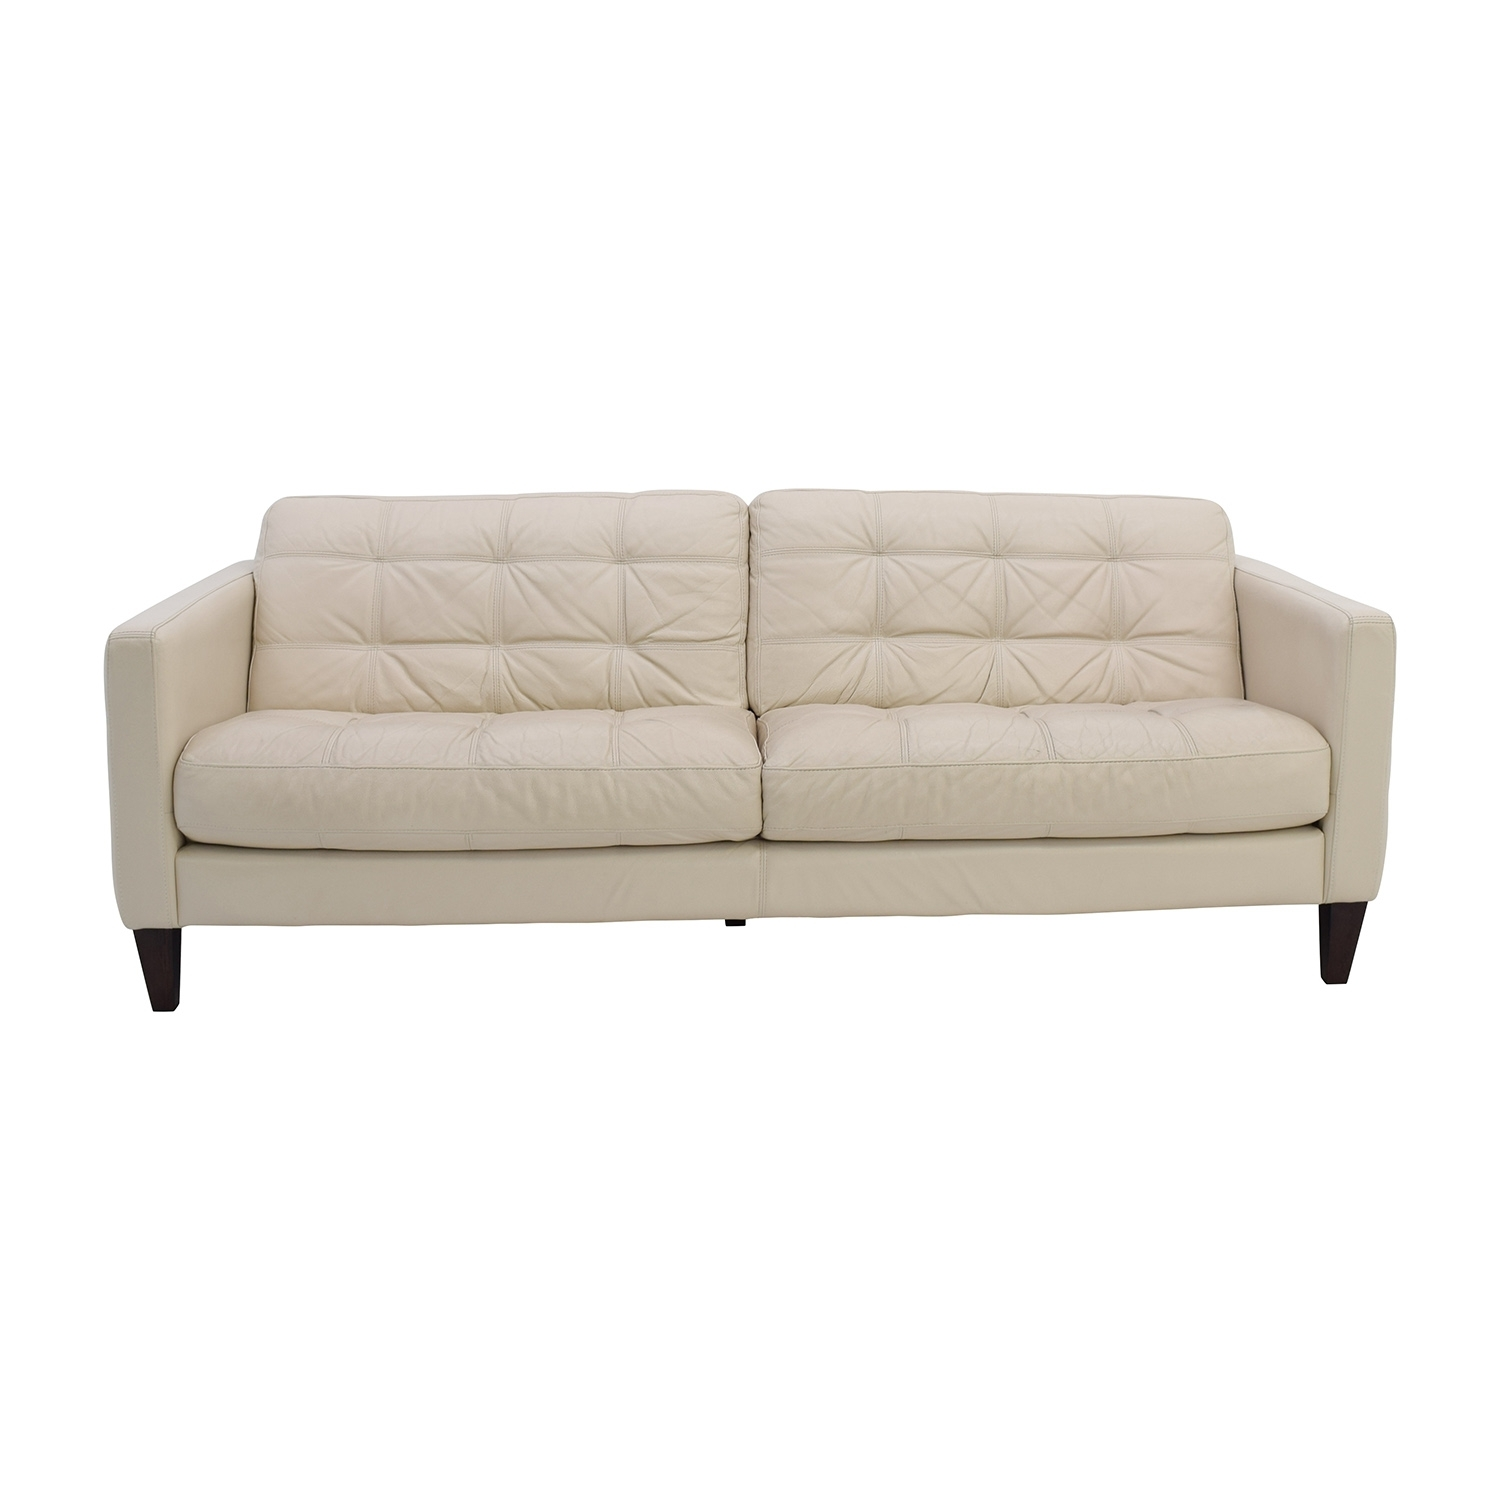 10 Photos Macys Leather Sofas